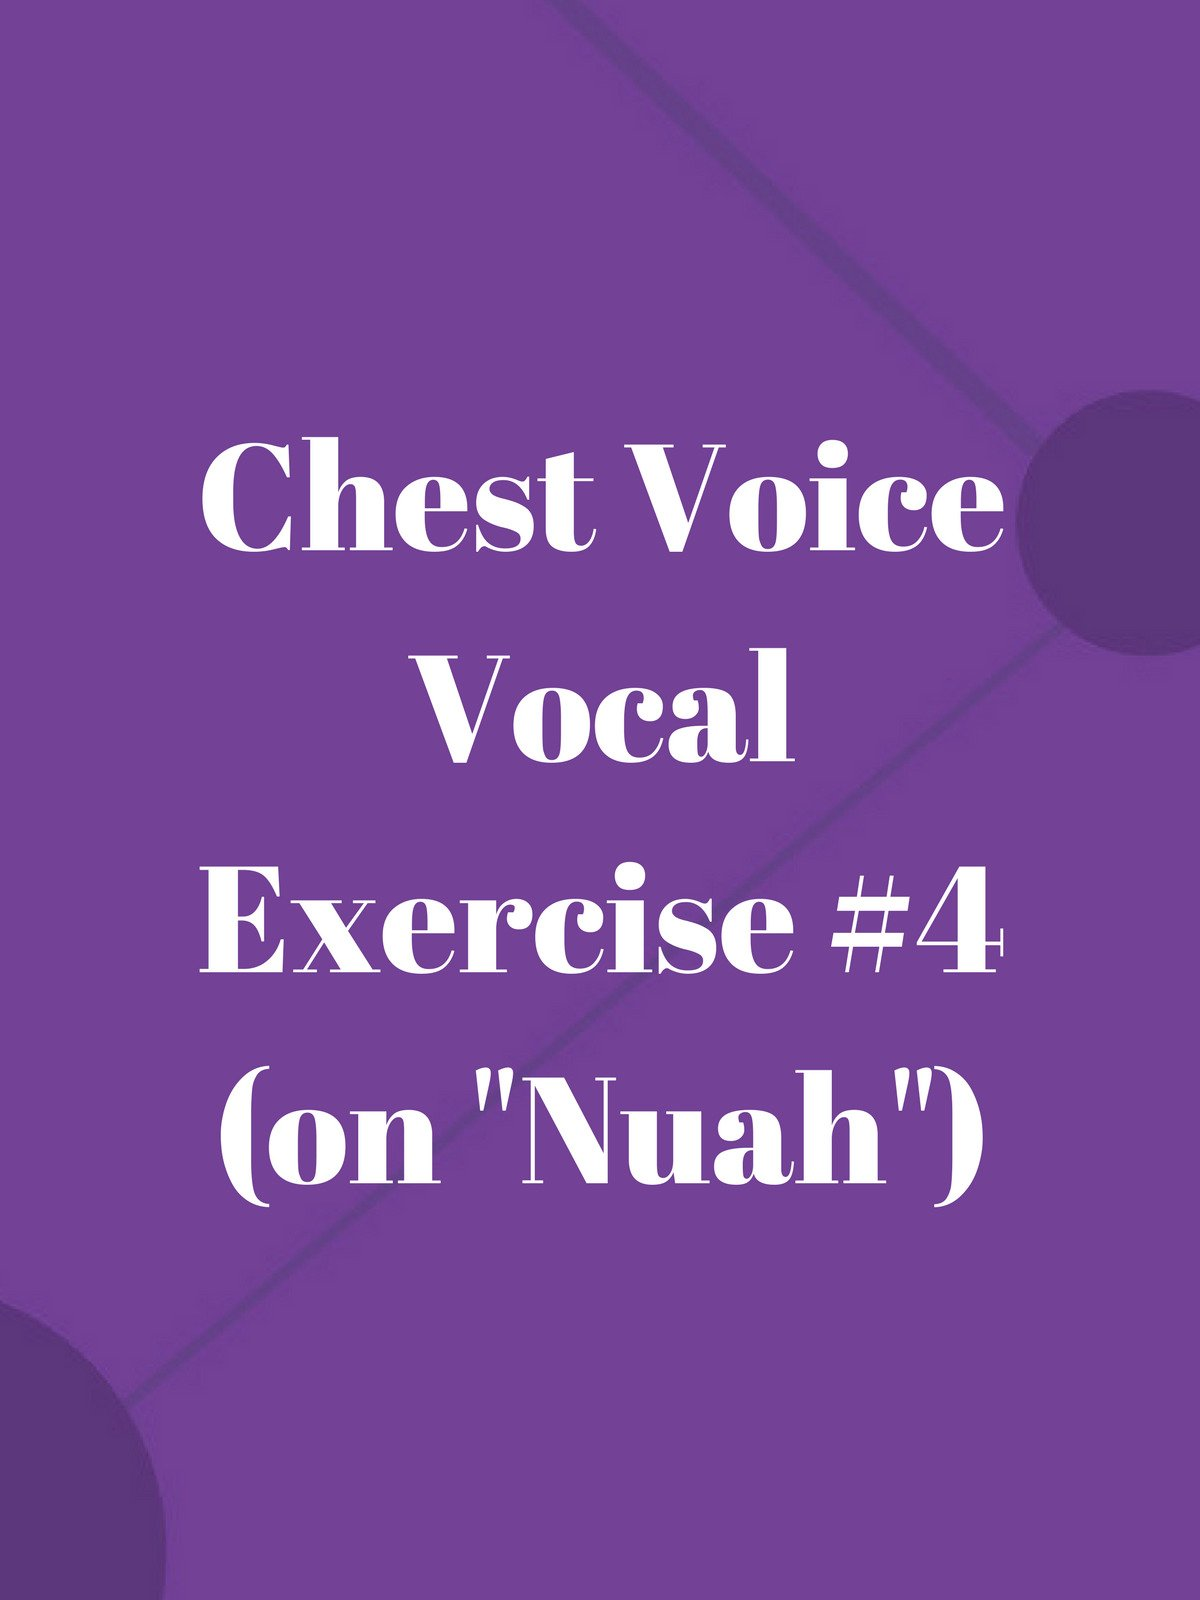 """Chest Voice Vocal Exercise #4 (on """"Nuah"""")"""